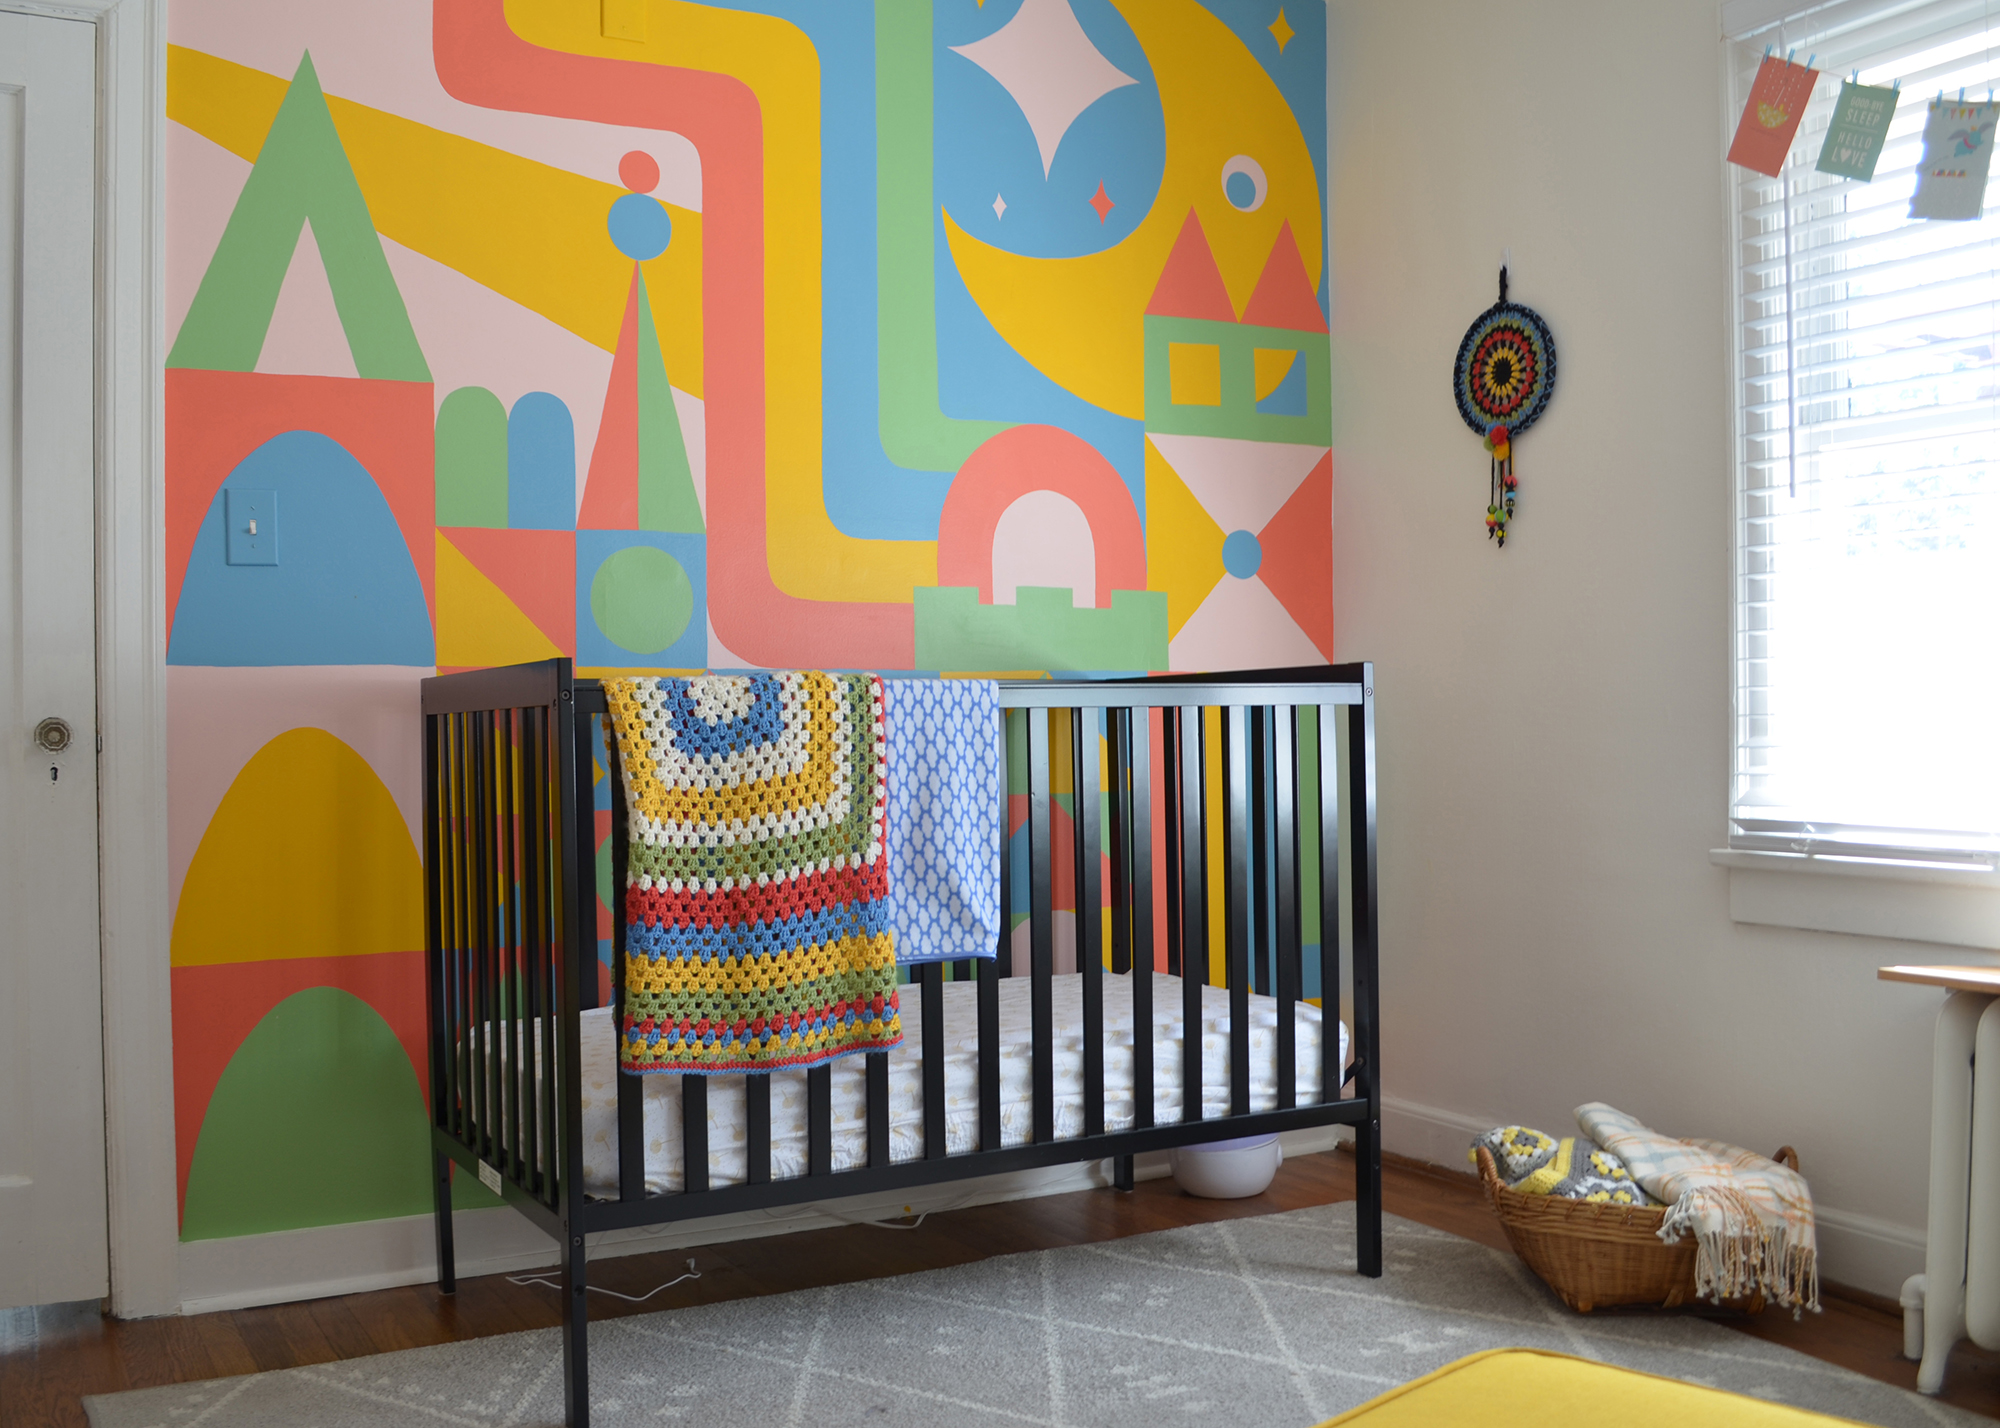 BADDELEY_nurserymural.01.JPG